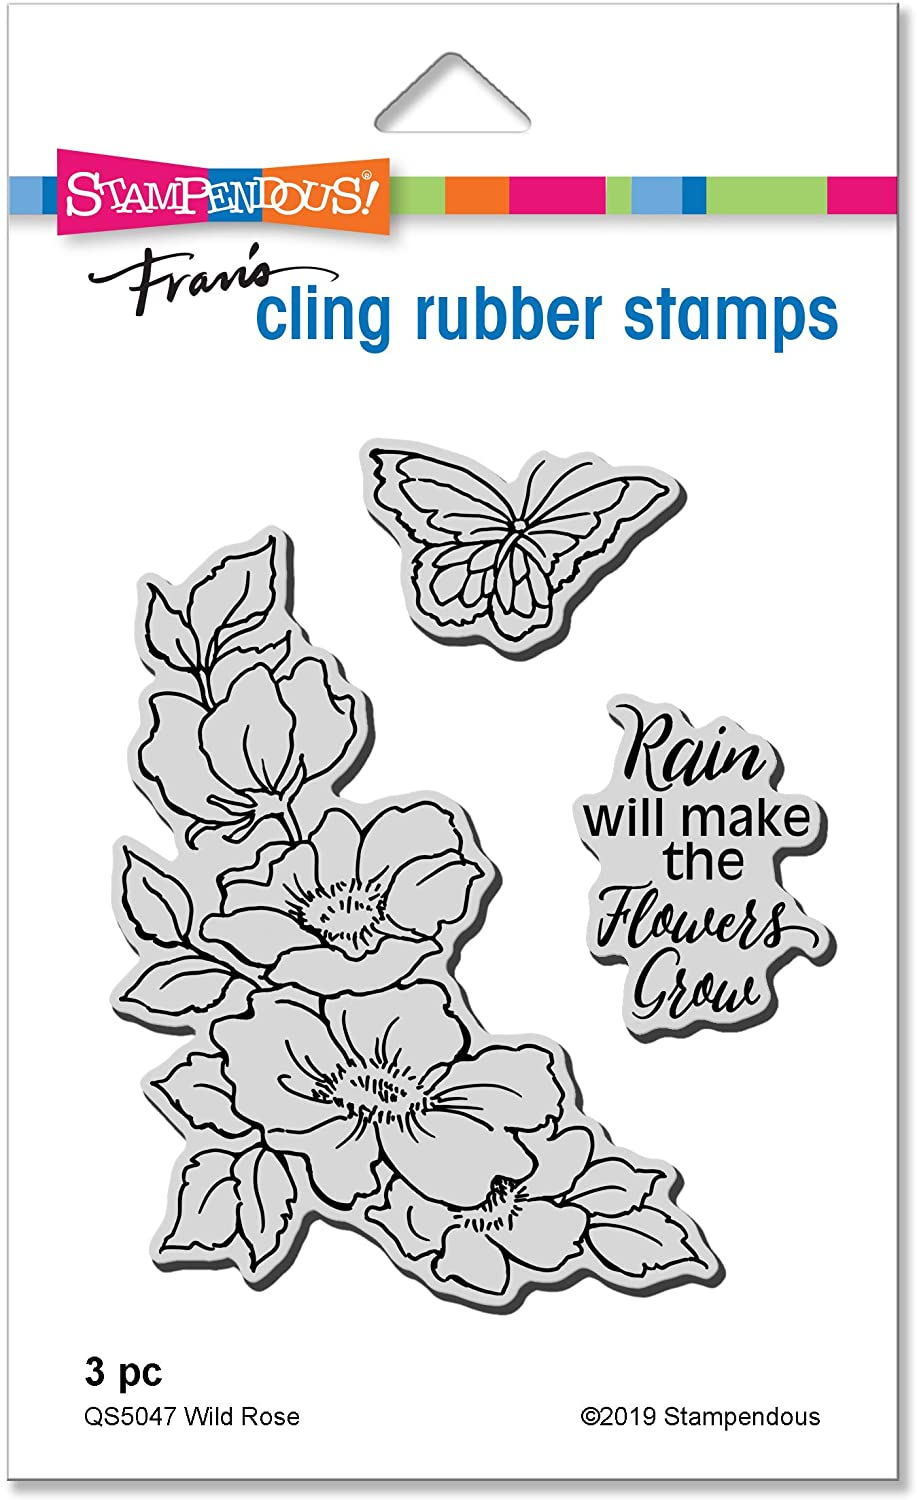 STAMPENDOUS CLING RUBBER STAMP WILD ROSE